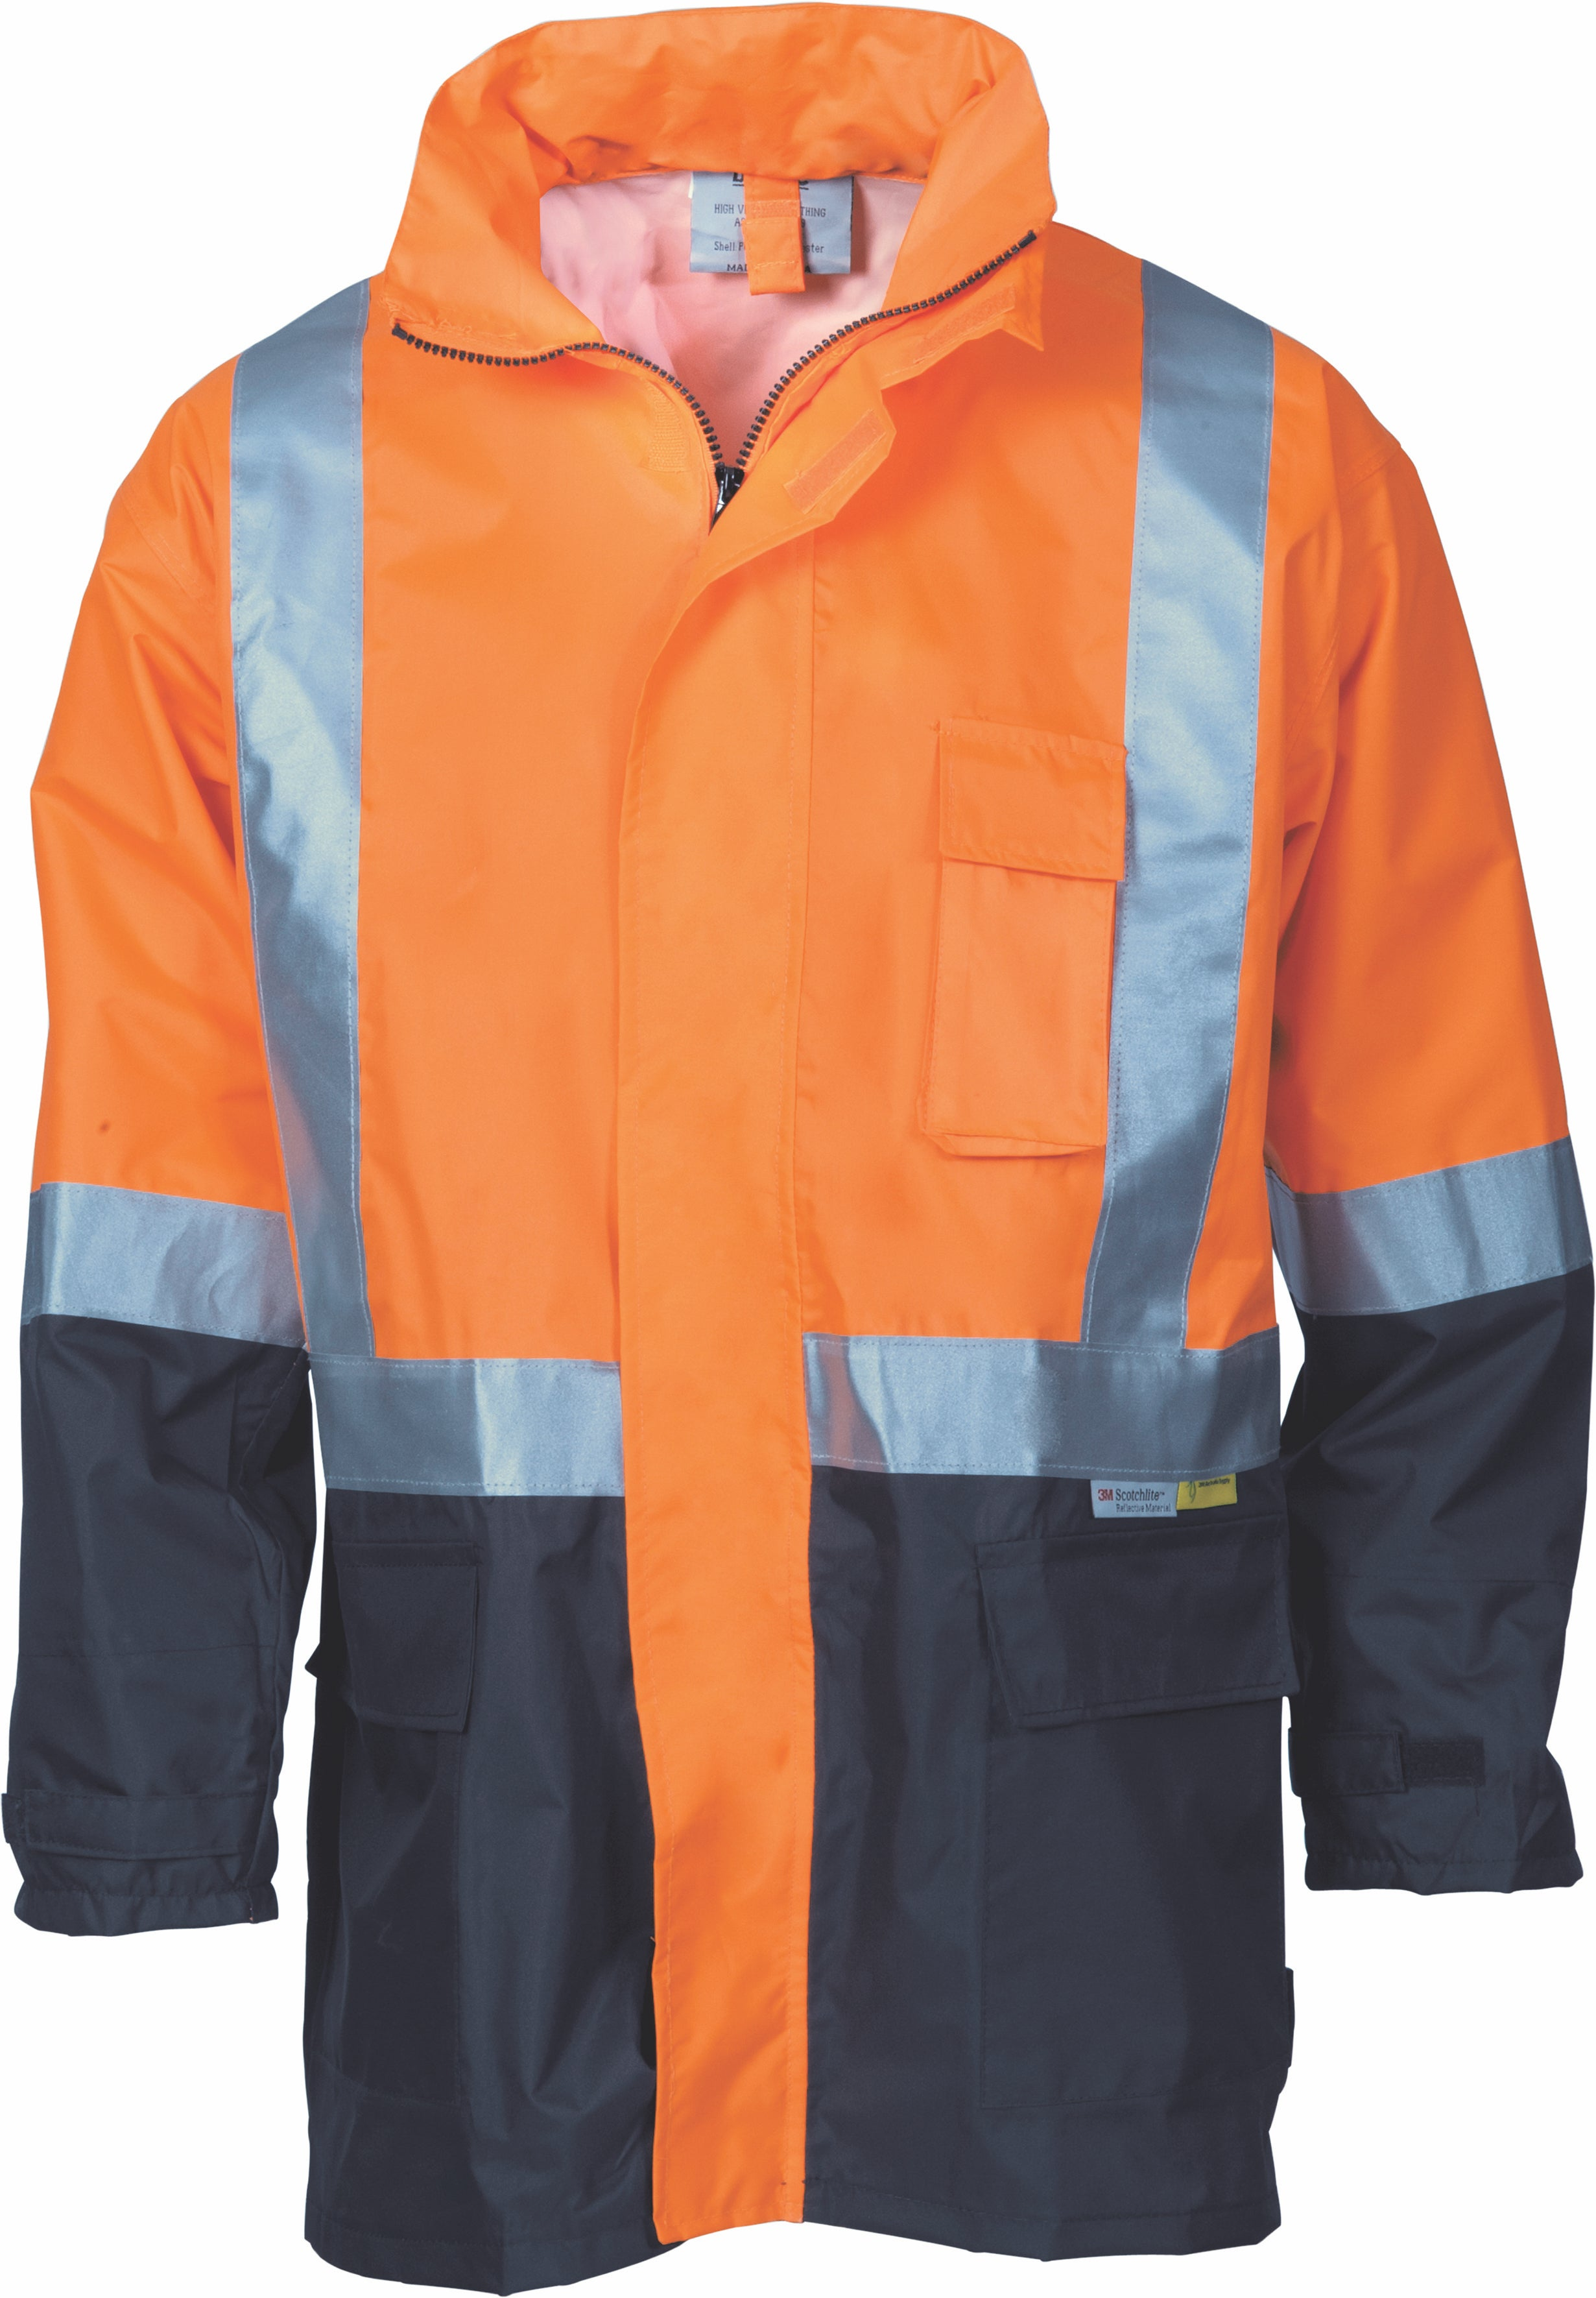 DNC - 3879  Hi Vis Two Tone Light Weight Rain Jacket with 3M Tape